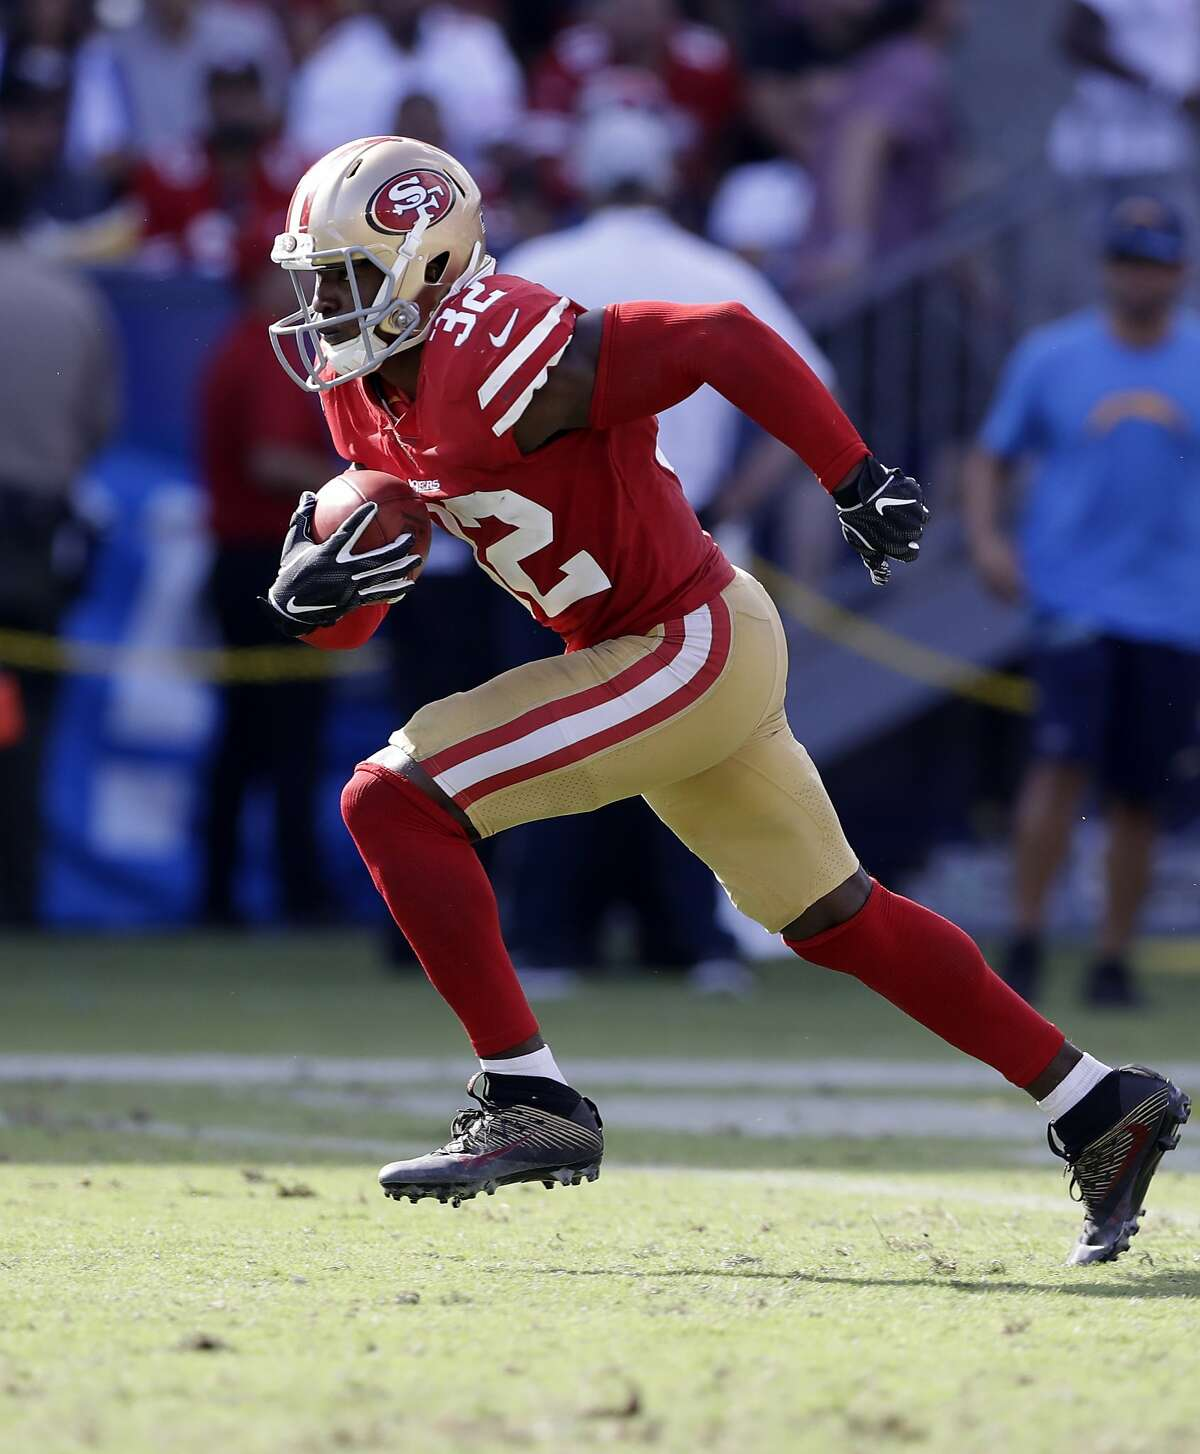 San Francisco 49ers cornerback D.J. Reed runs the ball during the second half of an NFL football game against the Los Angeles Chargers, Sunday, Sept. 30, 2018, in Carson, Calif.